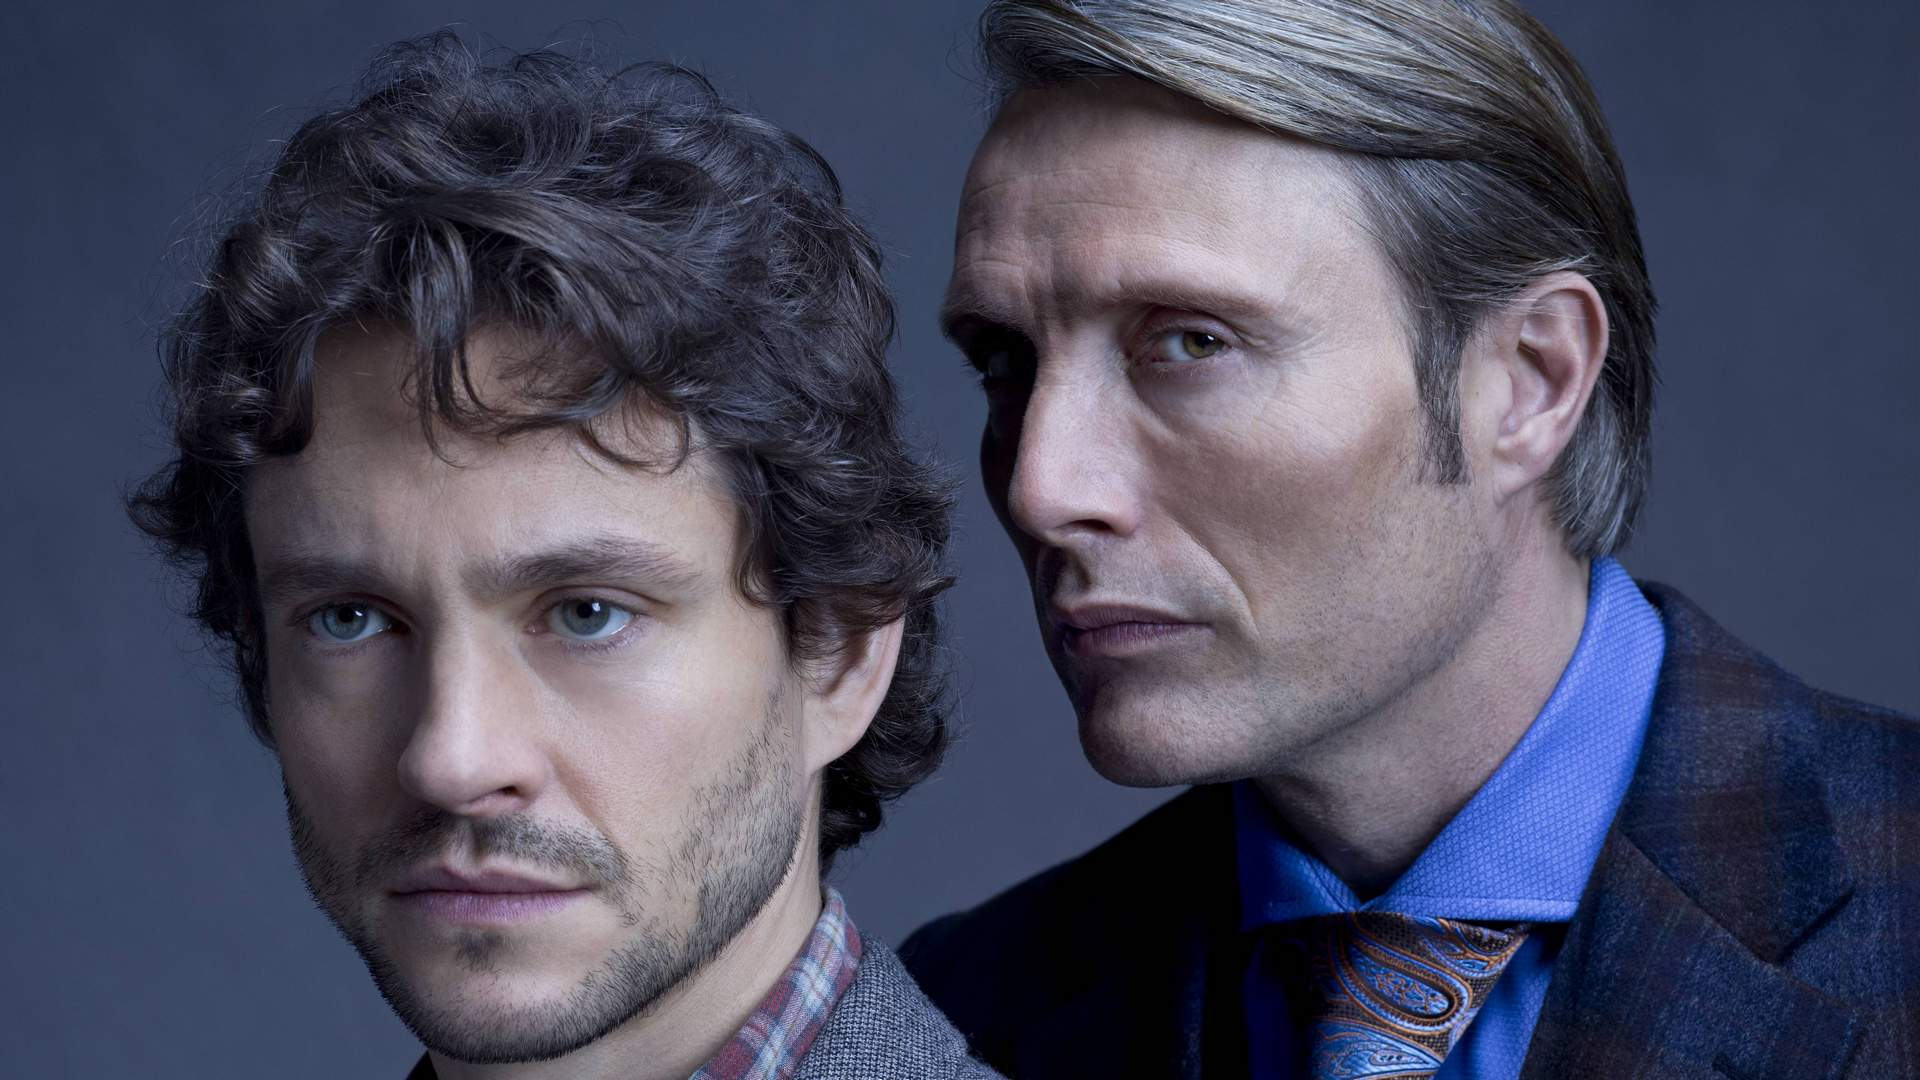 Hannibal Season 4 Update